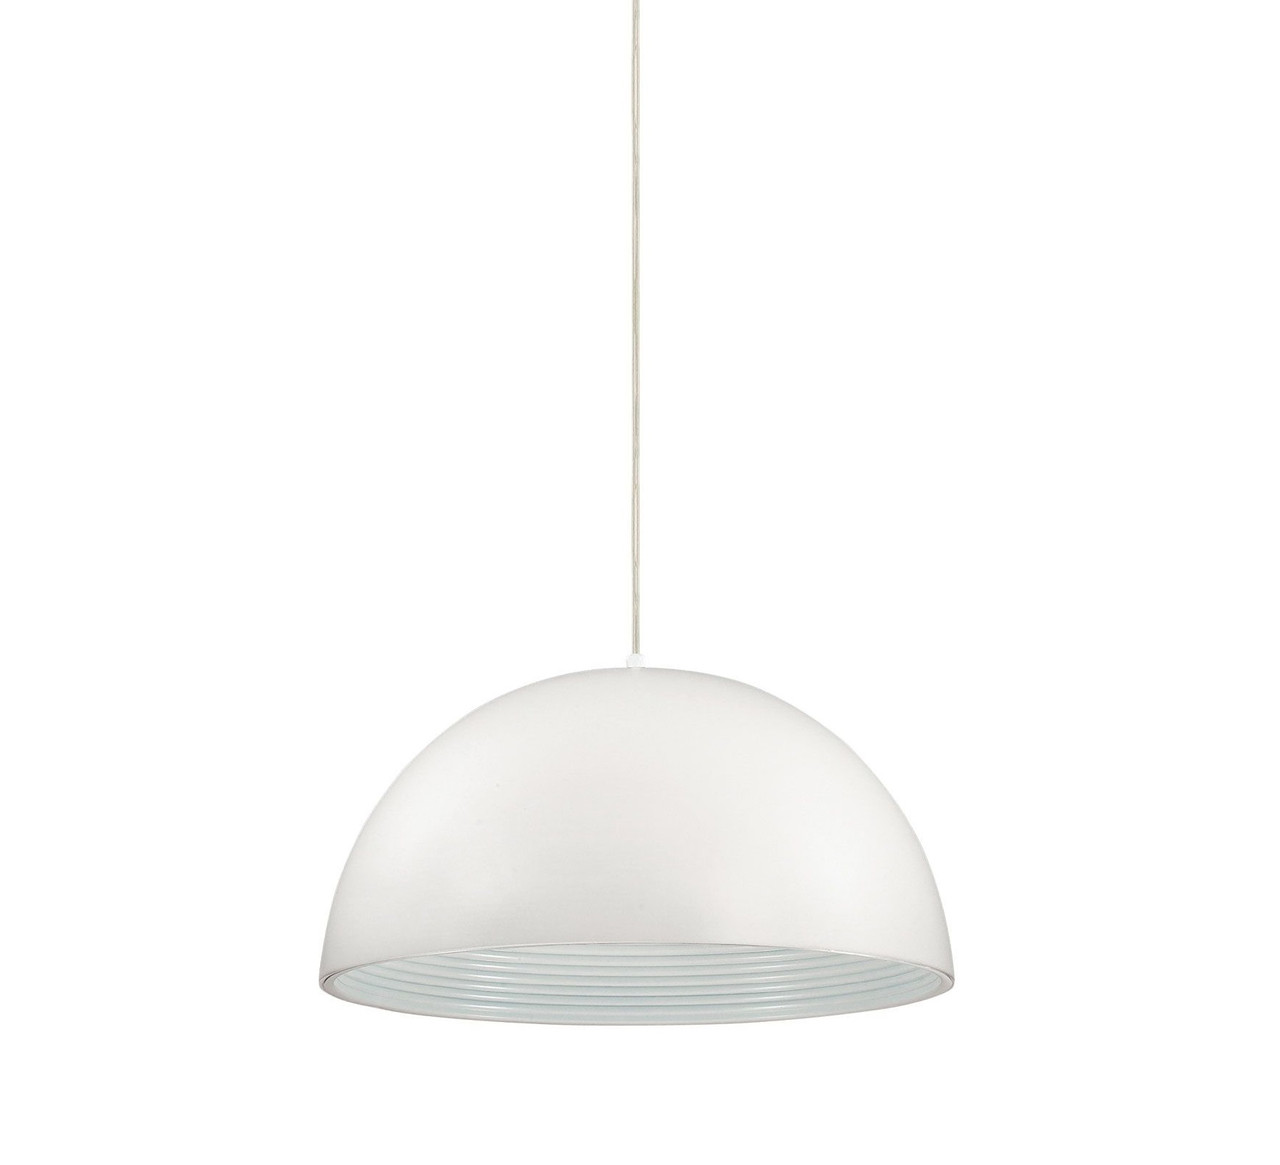 Подвес Don SP1 Small. Ideal Lux